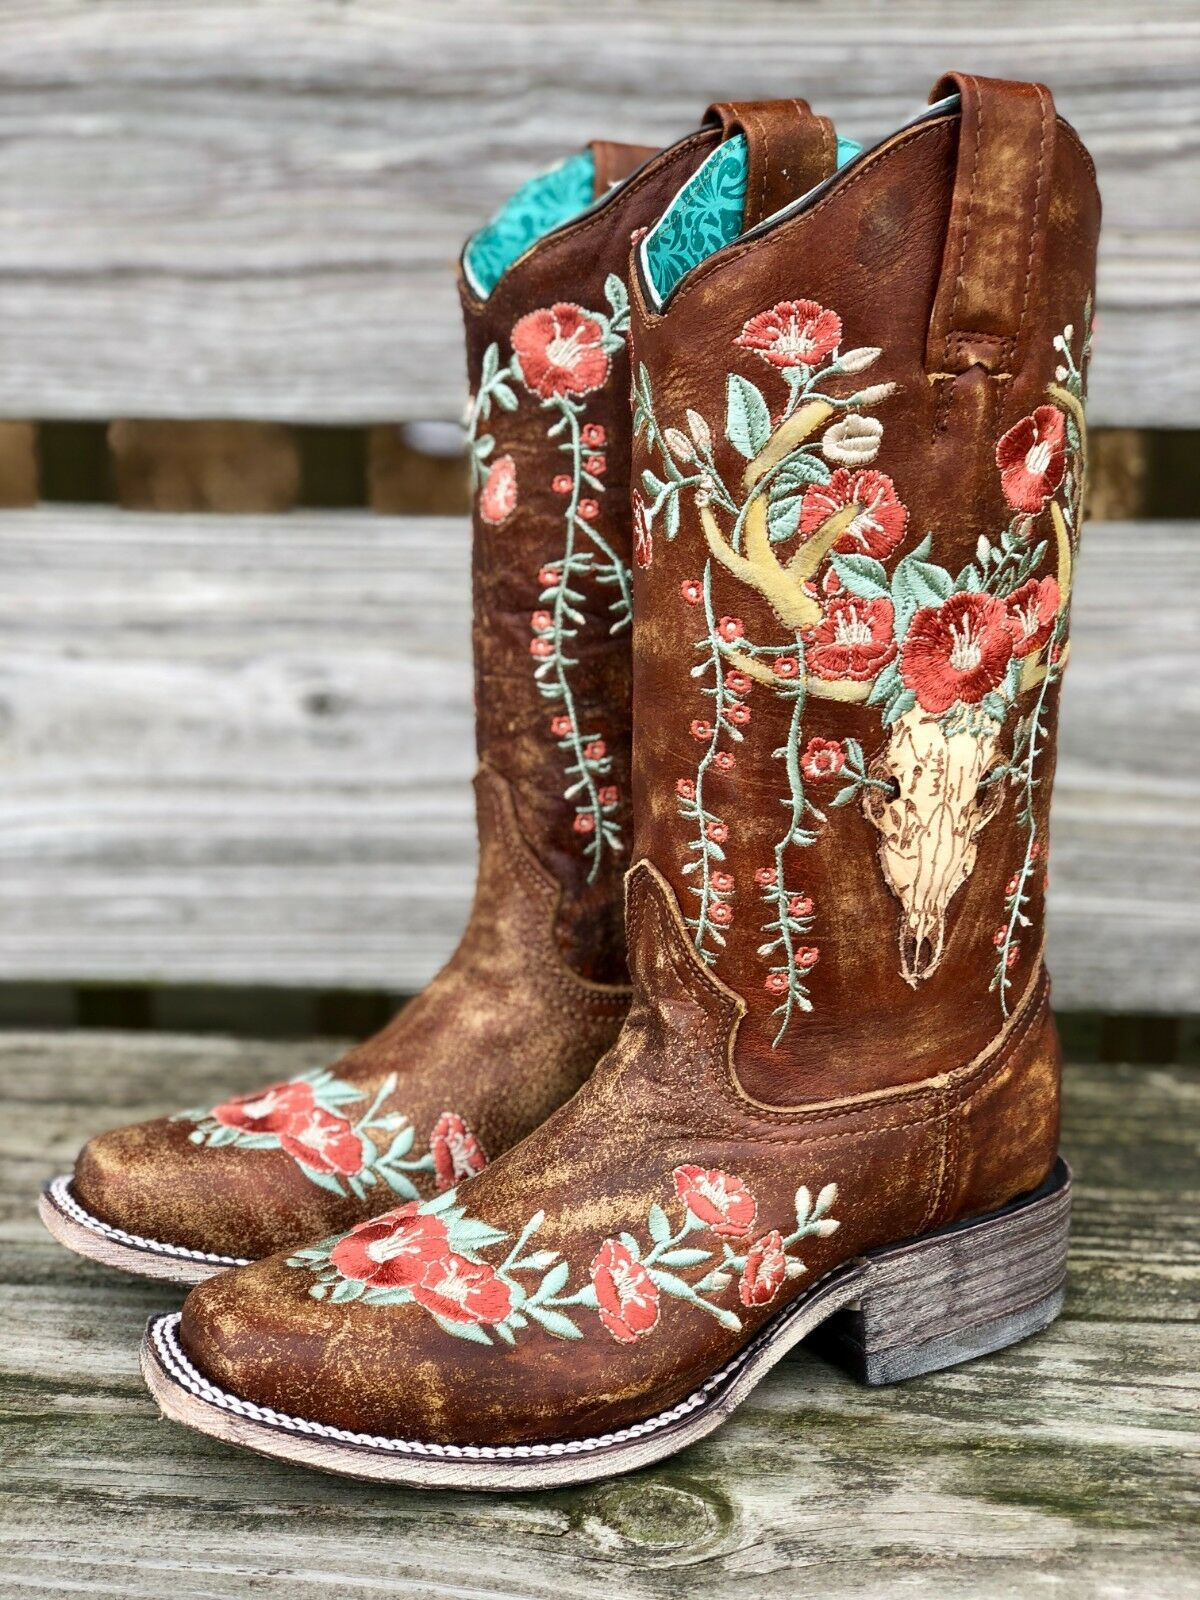 Corral Women's Deer Skull & Embroidery Distressed Tan Square Toe Boots A3708